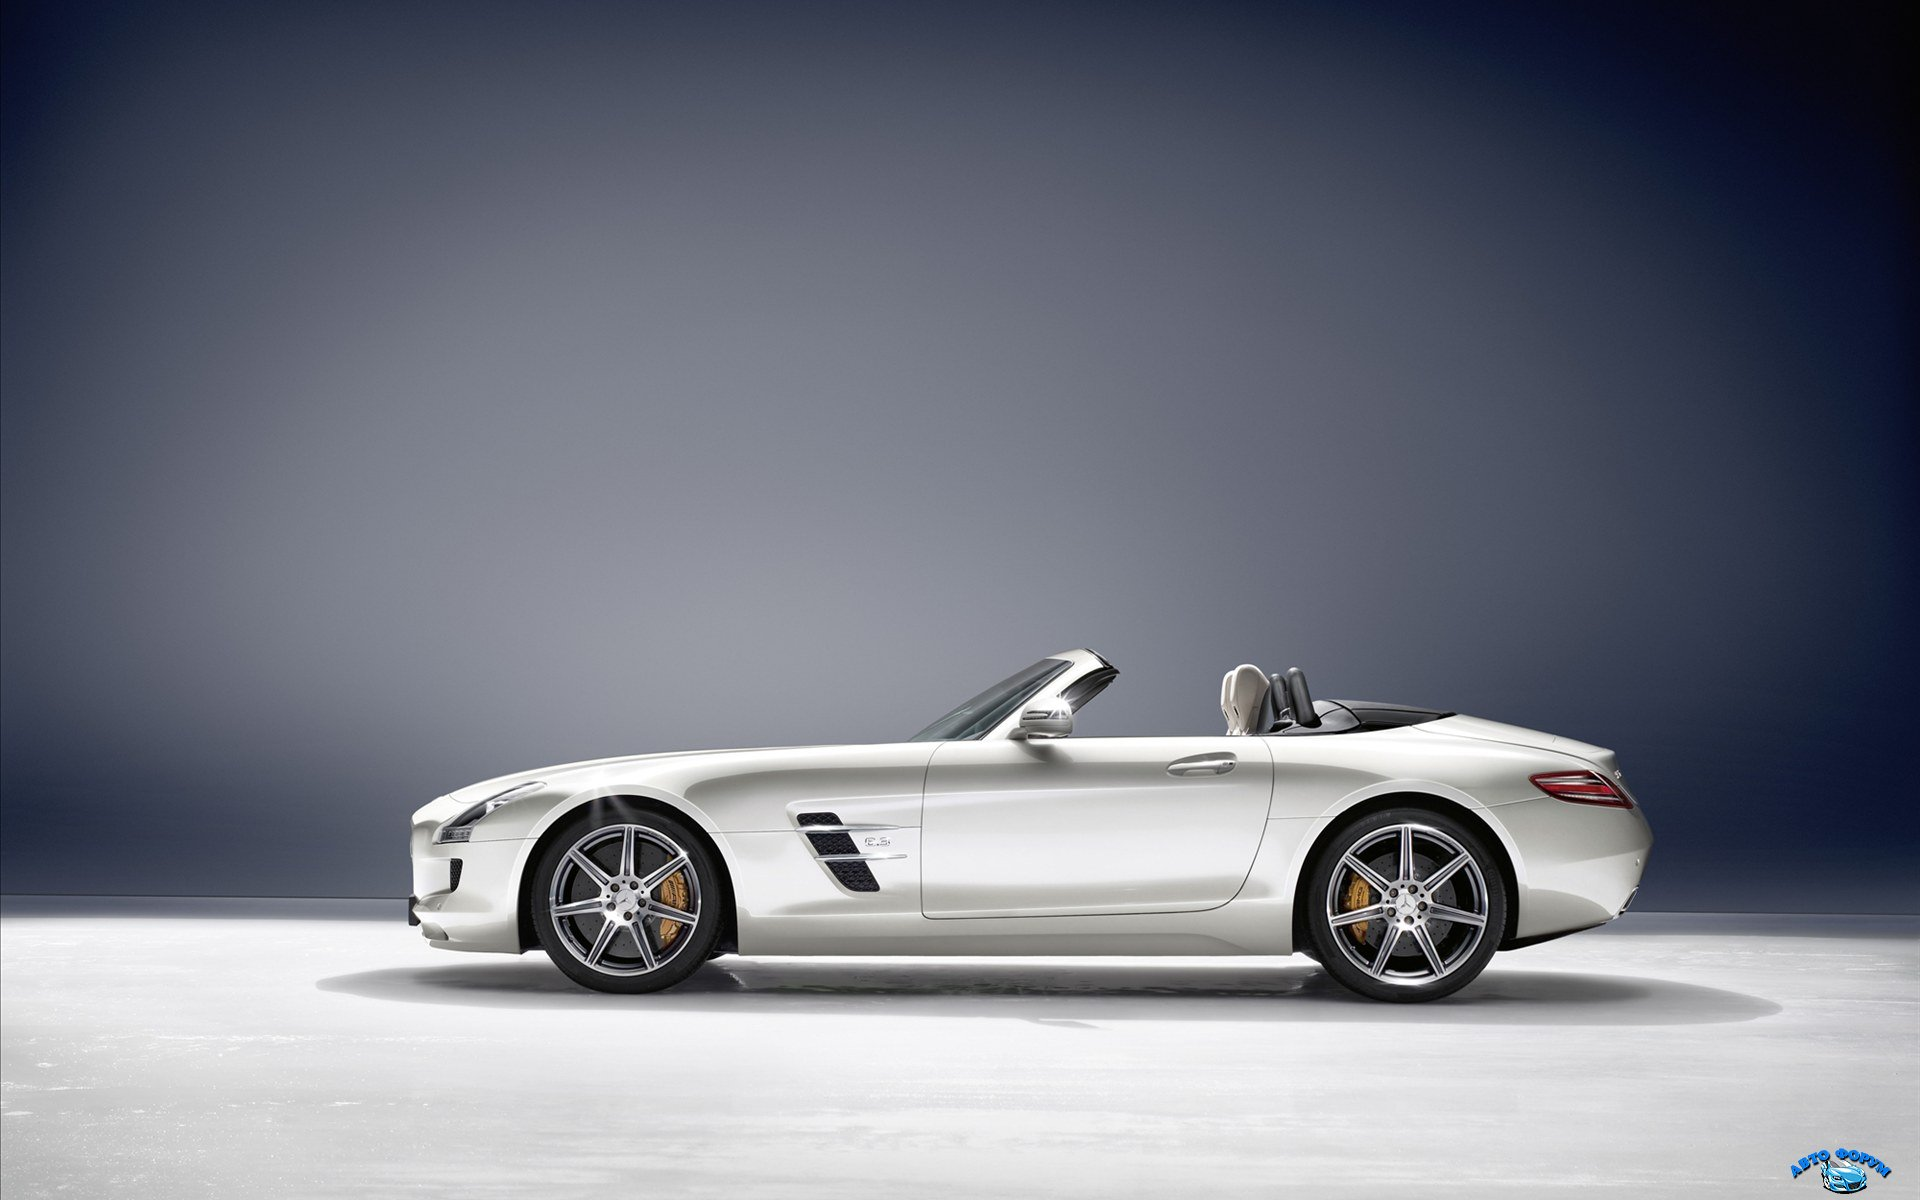 Mercedes-Benz-SLS-AMG-Roadster-2011-widescreen-13.jpg